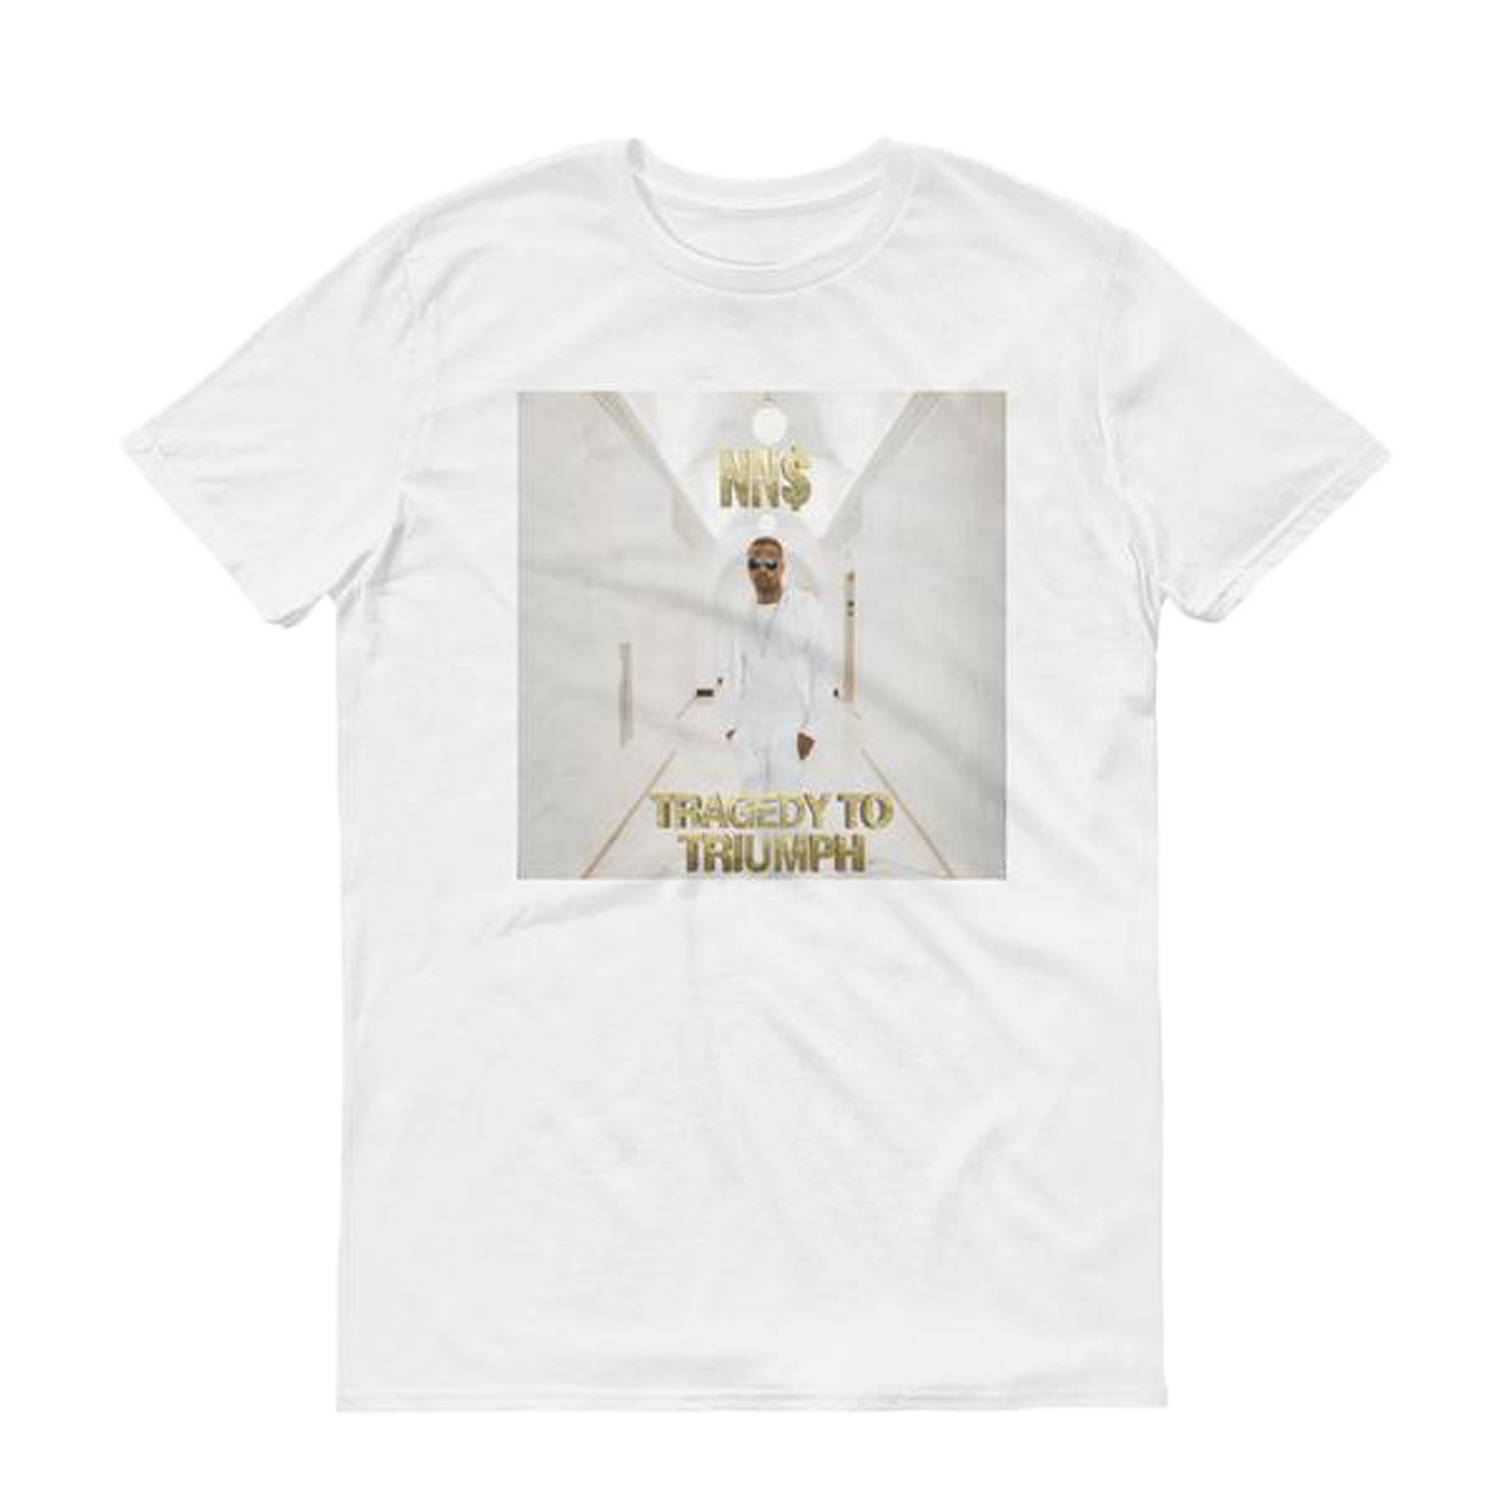 Men's NN$ Tragedy to Triumph Album Cover T-Shirt